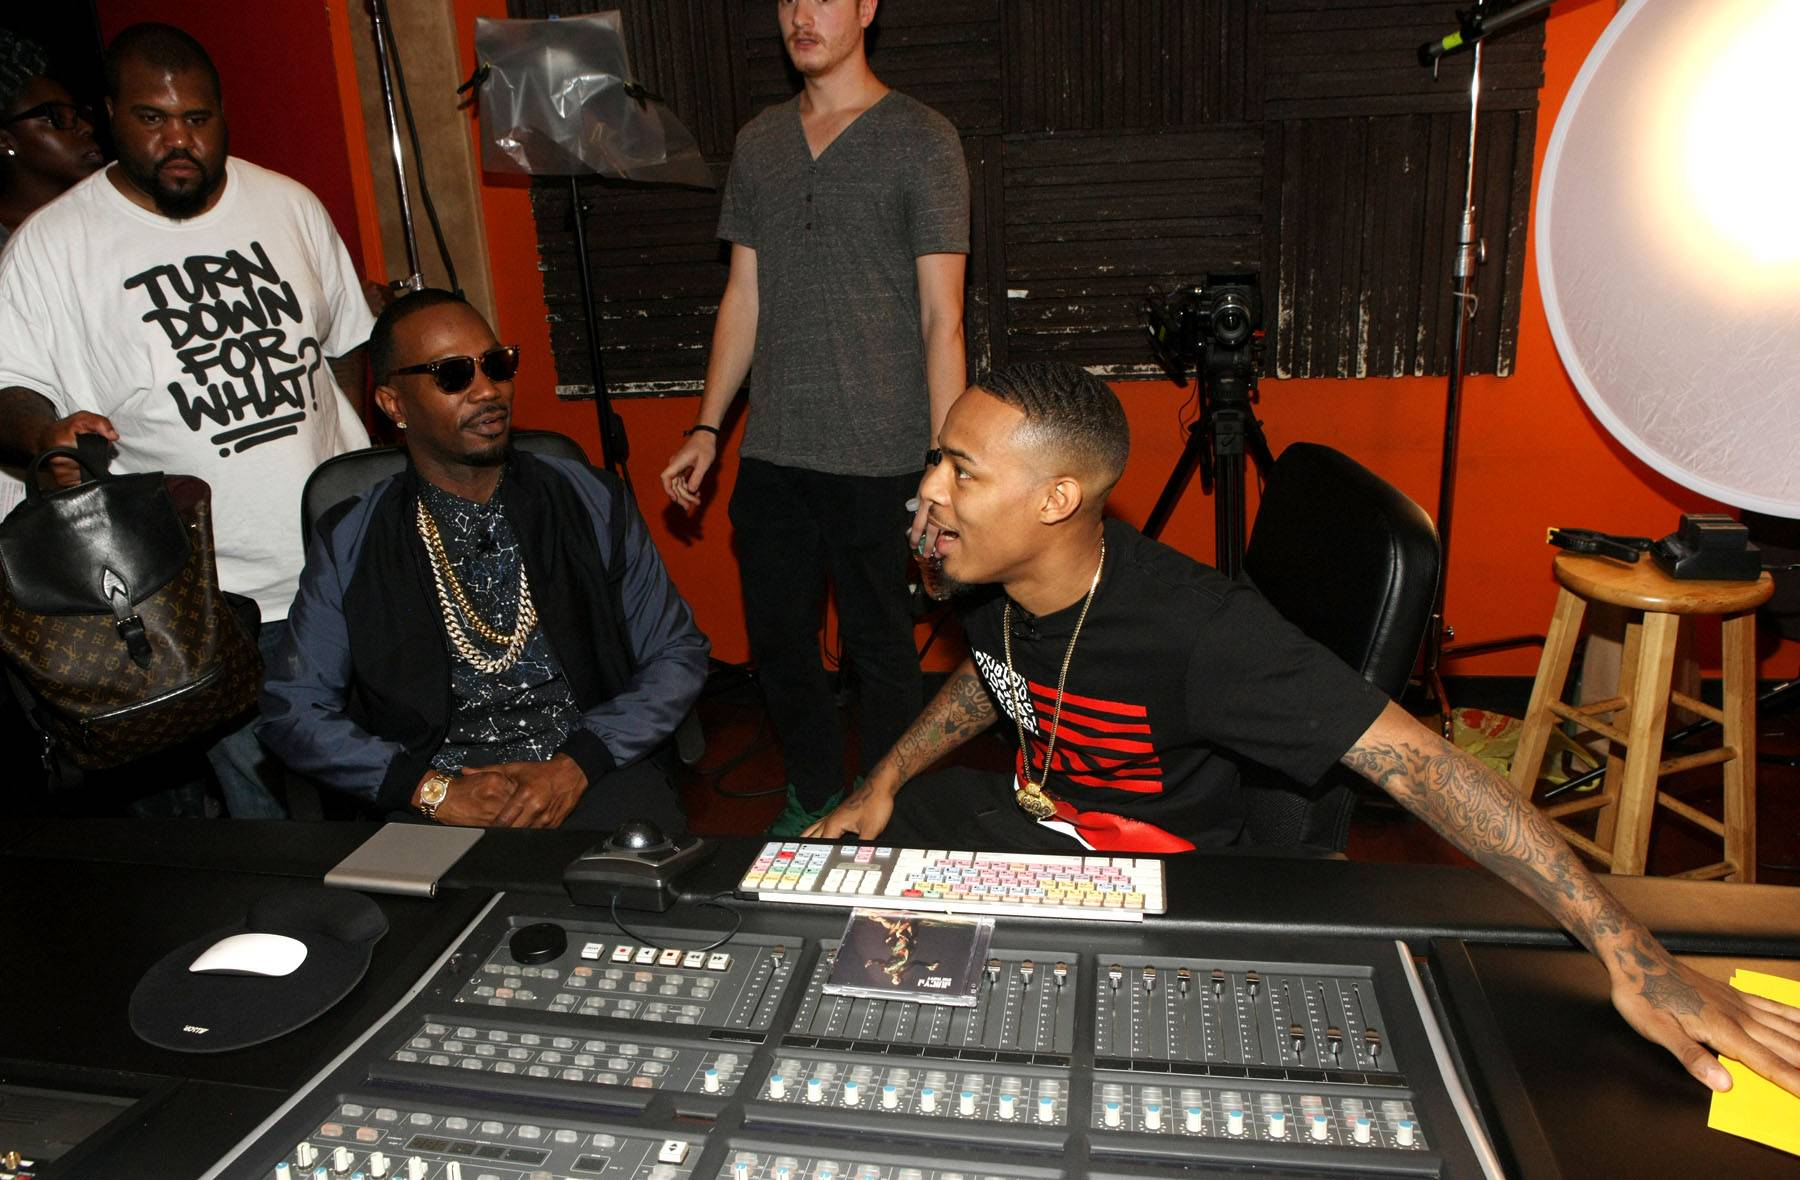 Sounding Board - Bow Wow mixes with Juicy J on 106. (Photo: Bennett Raglin/BET/Getty Images for BET)